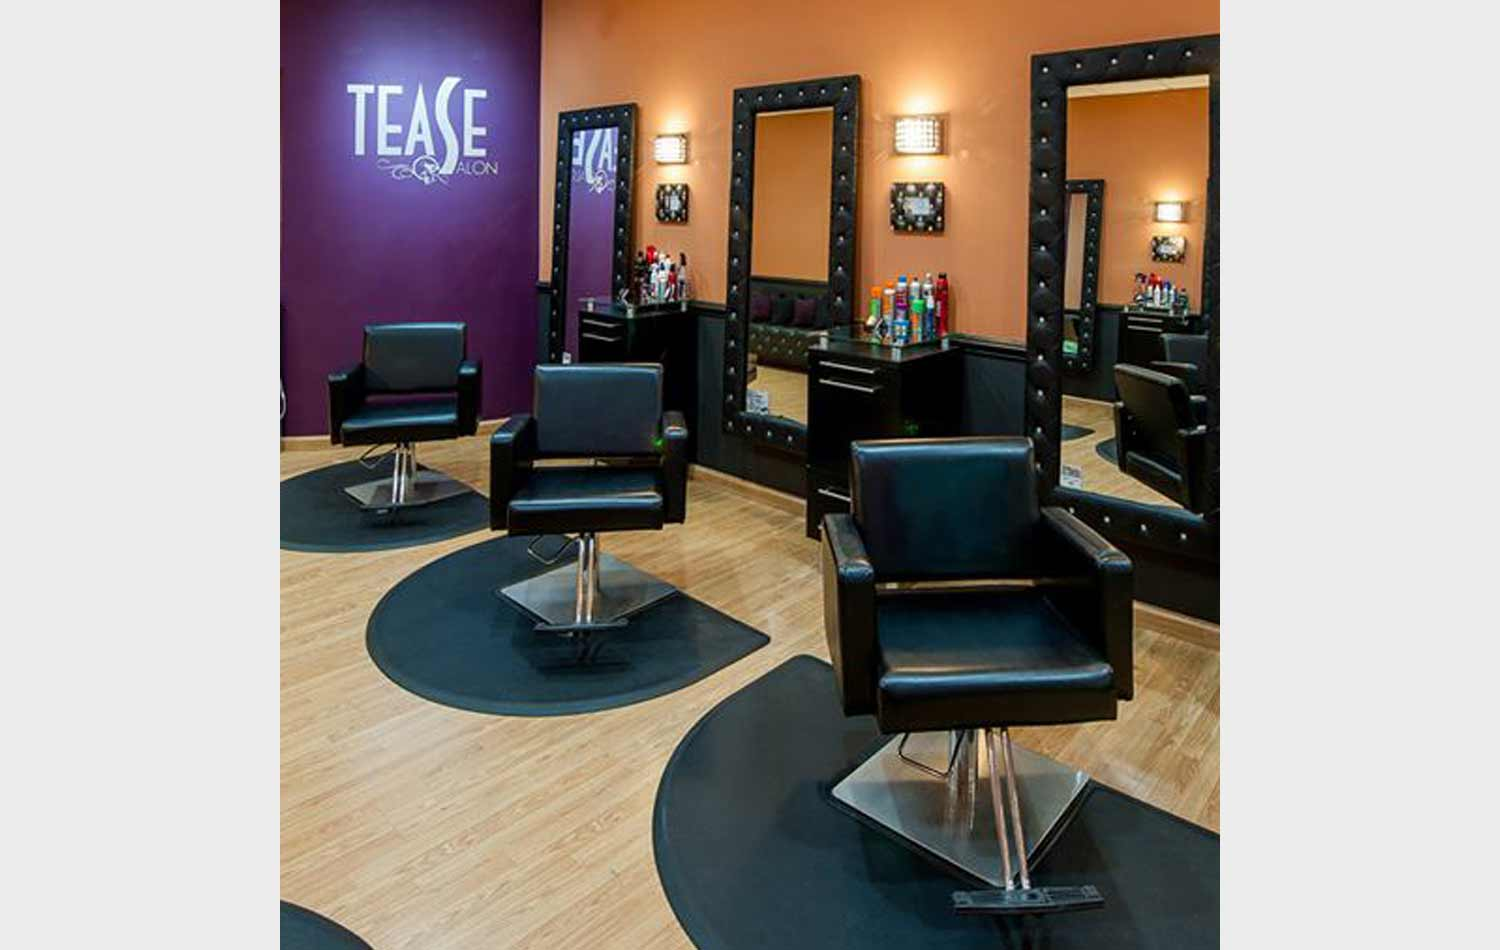 Tease Salon alternative product image 4